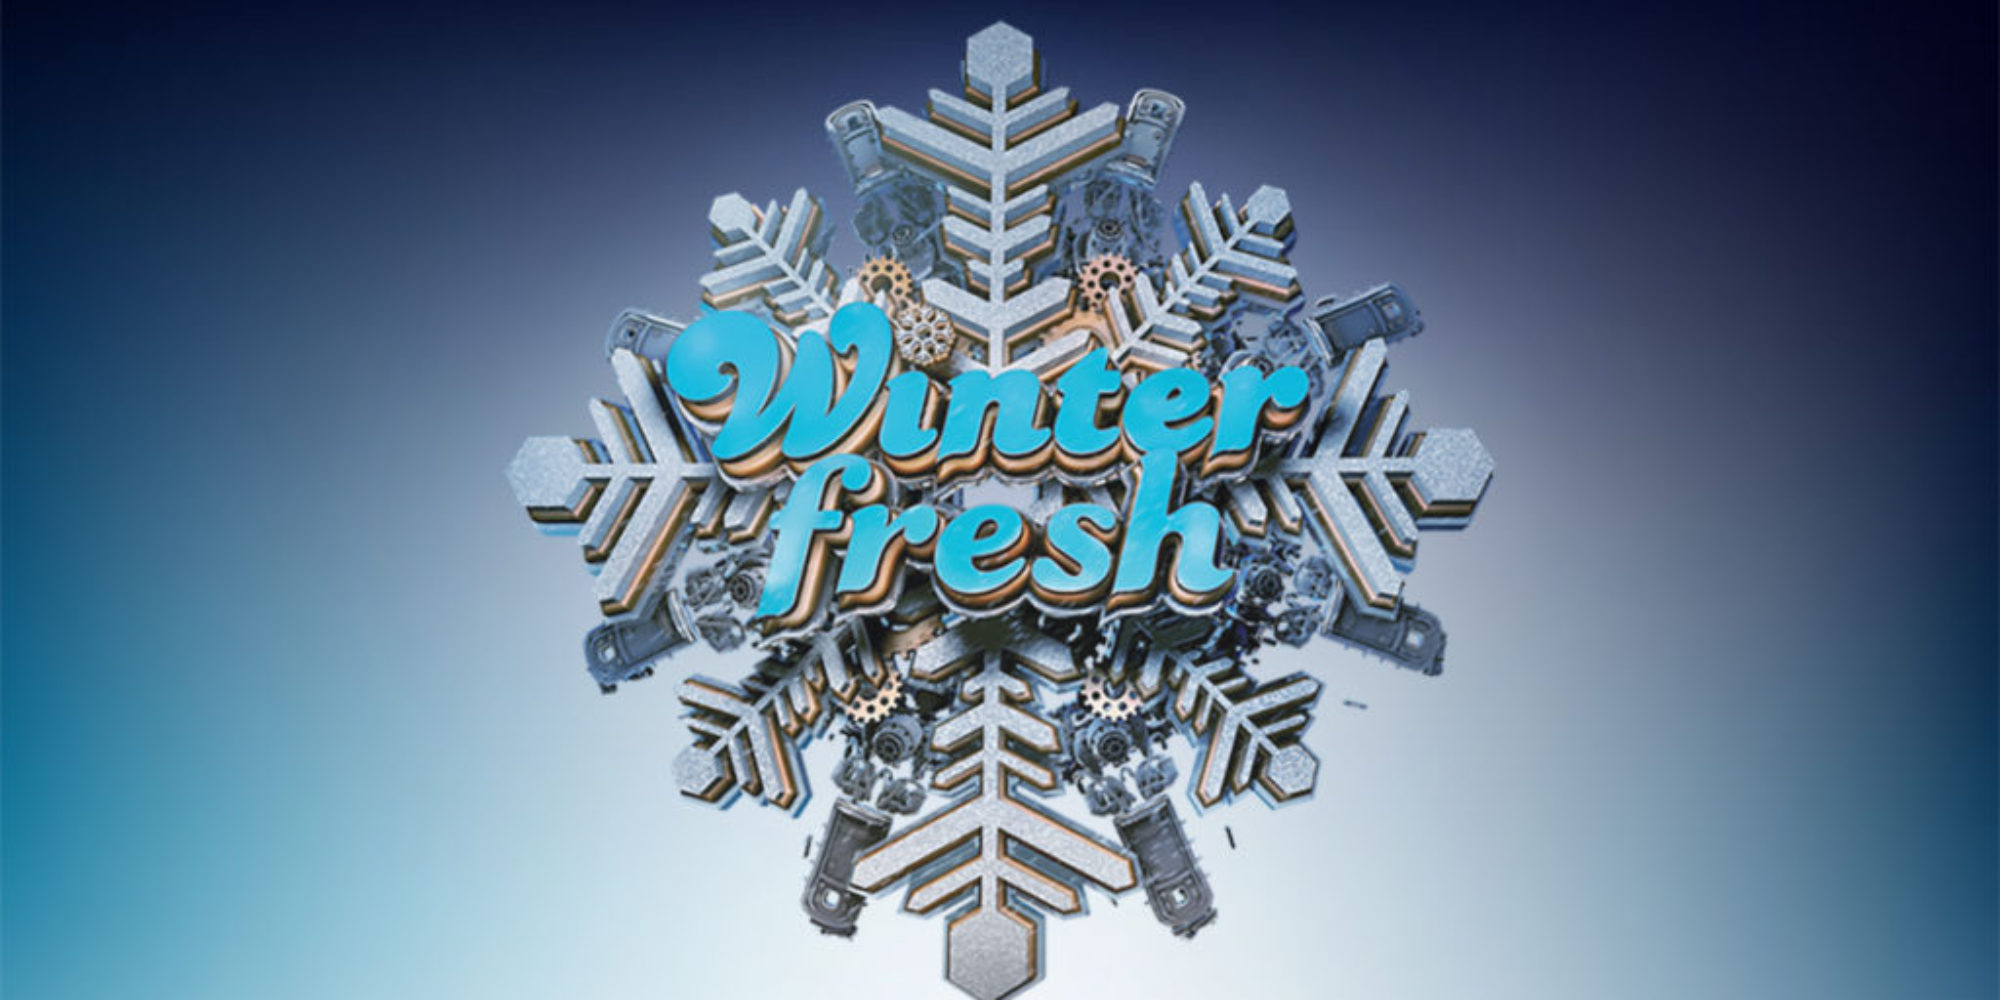 Winterfresh 2016 Tickets On Sale NOW!